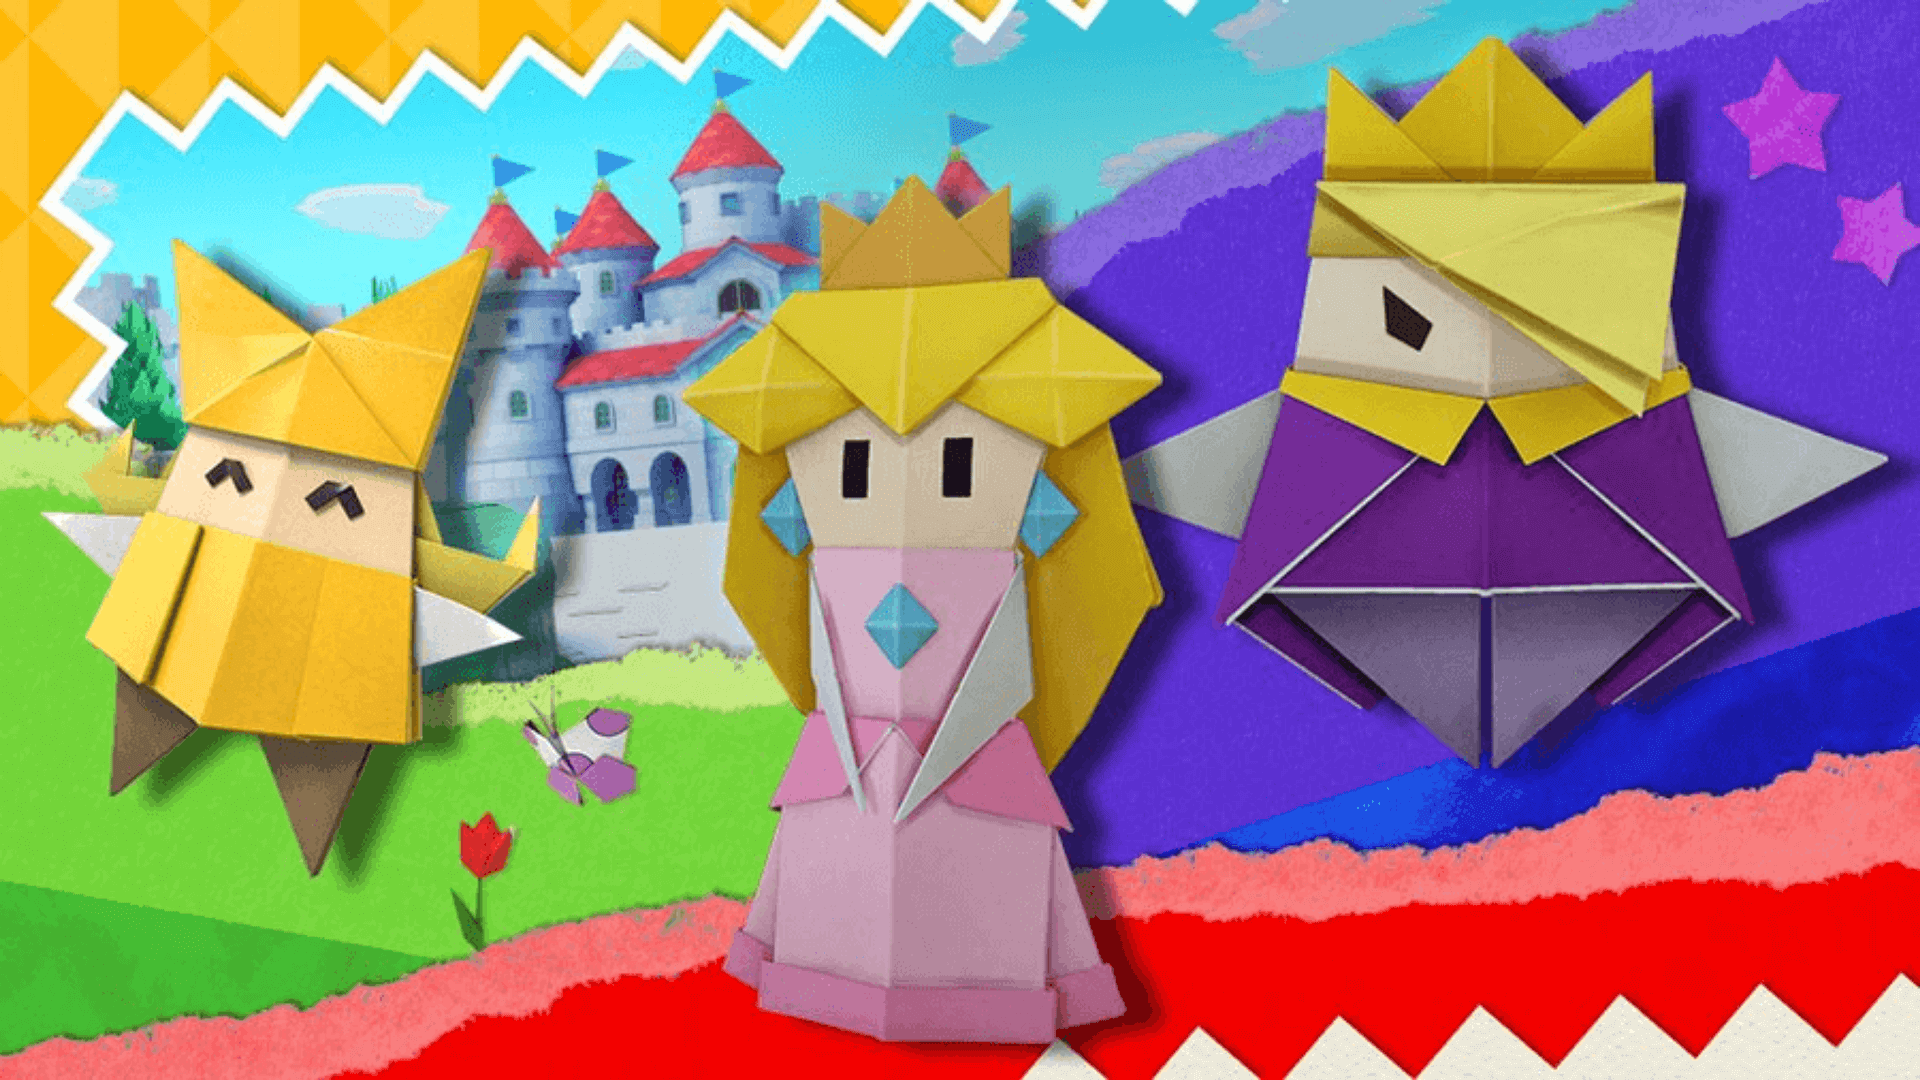 SSBU Origami King and Octopath Traveler Spirits are Permanent Now